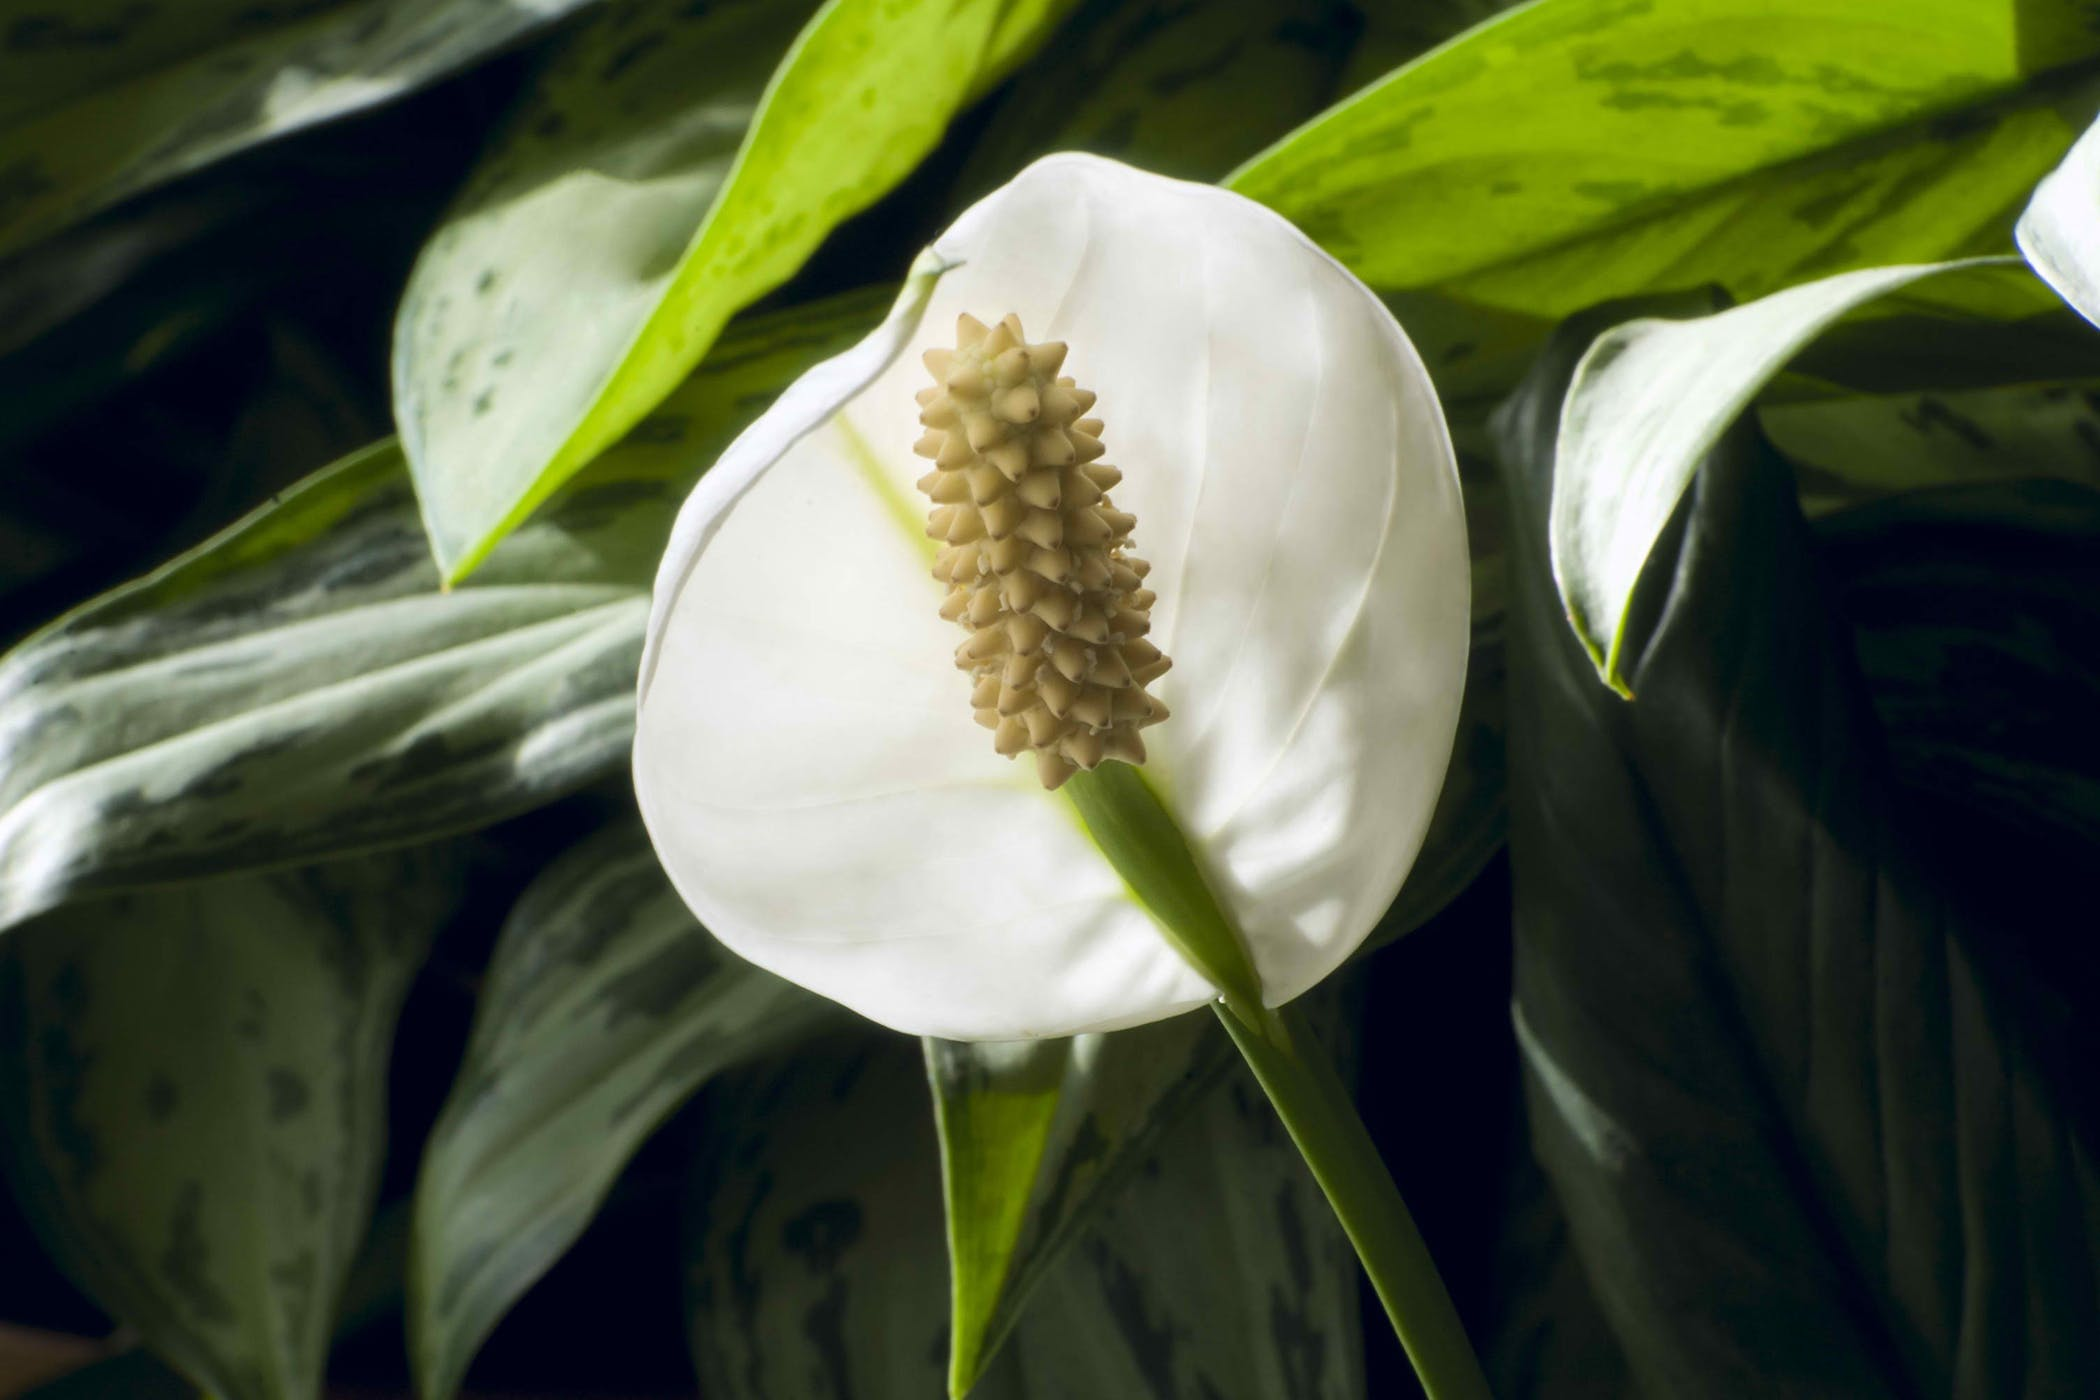 Mauna loa peace lily poisoning in cats symptoms causes diagnosis mauna loa peace lily poisoning in cats izmirmasajfo